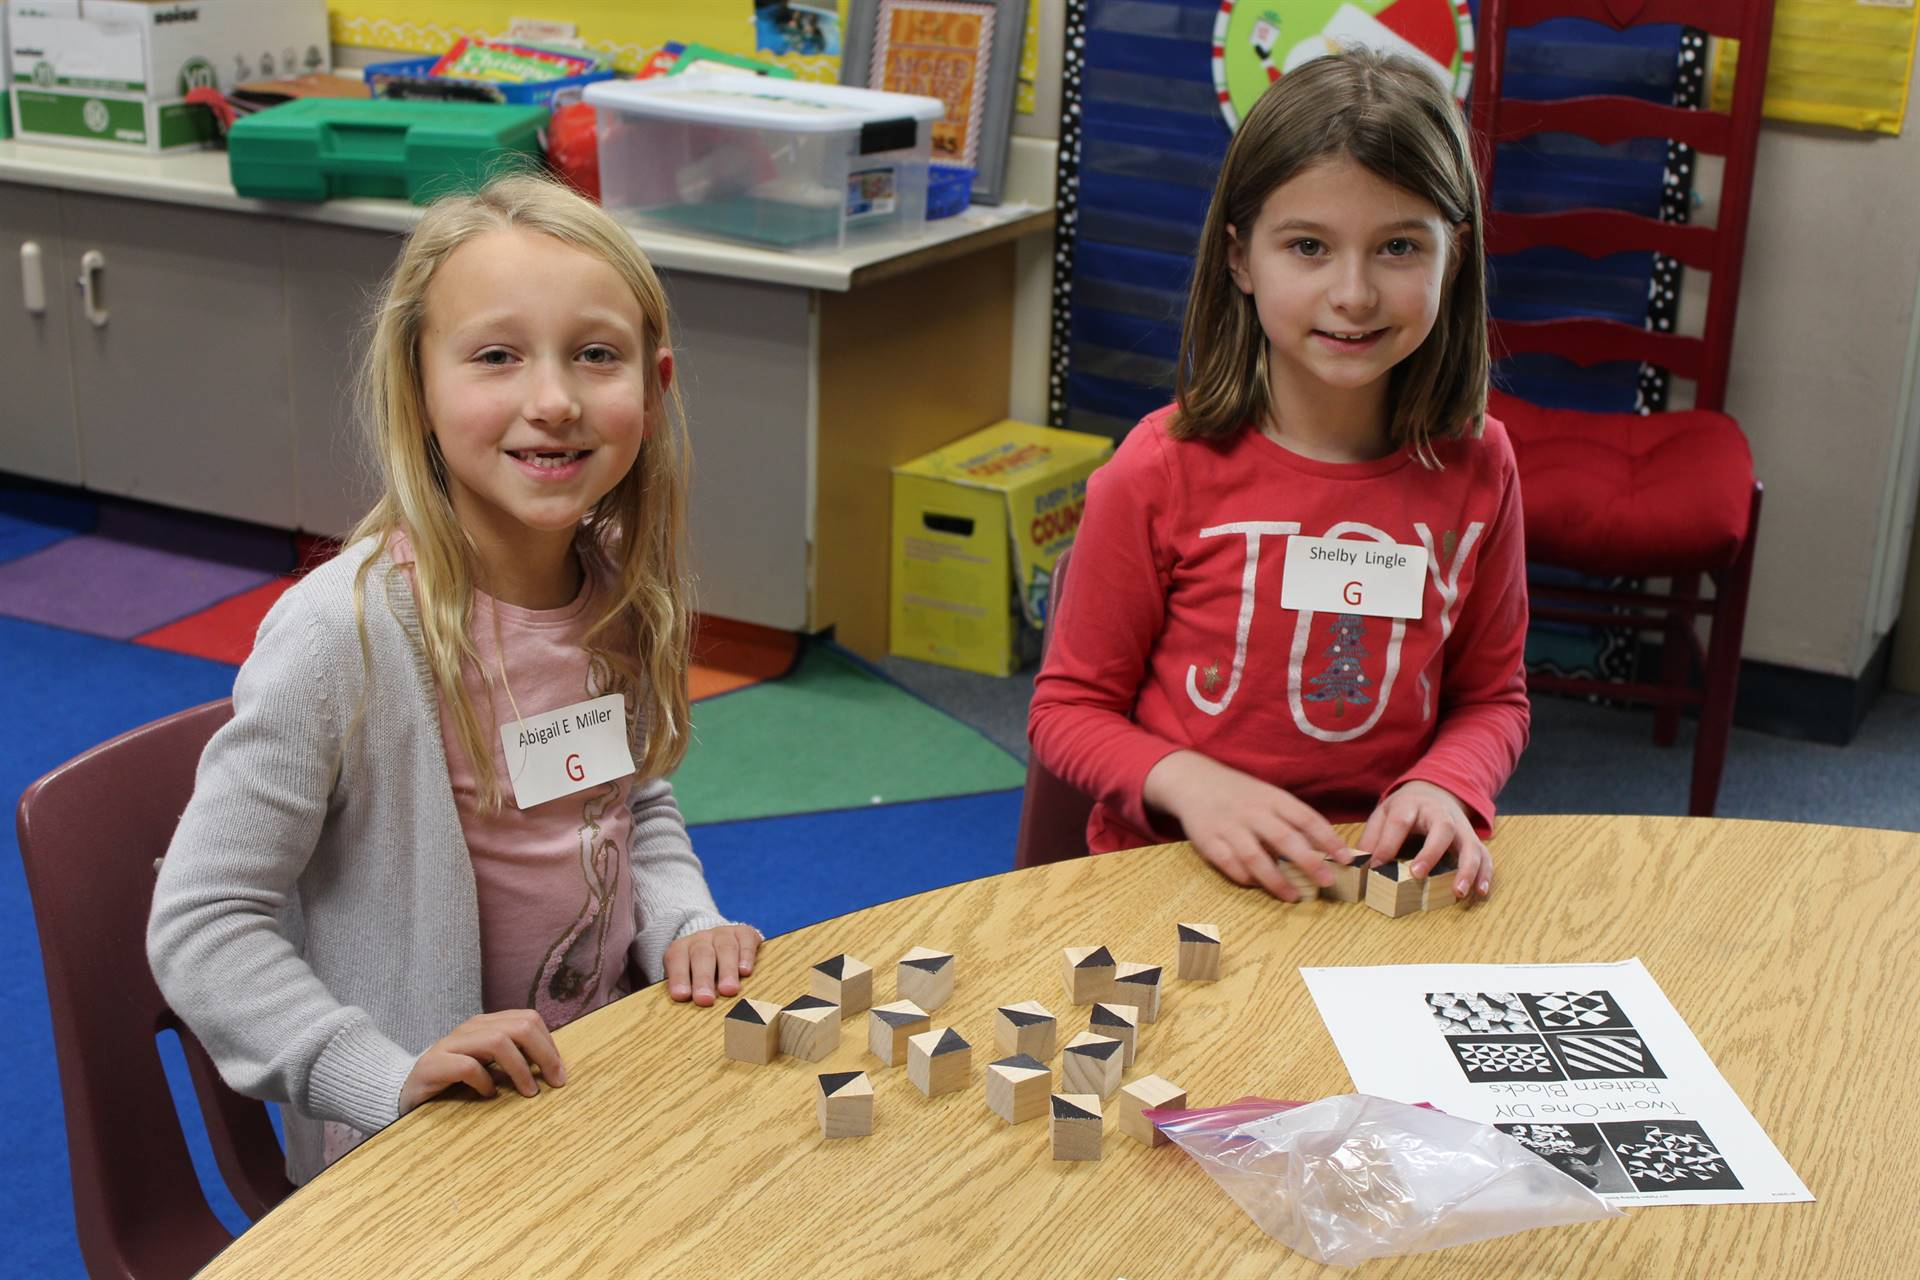 Two students getting ready to work with patterned blocks